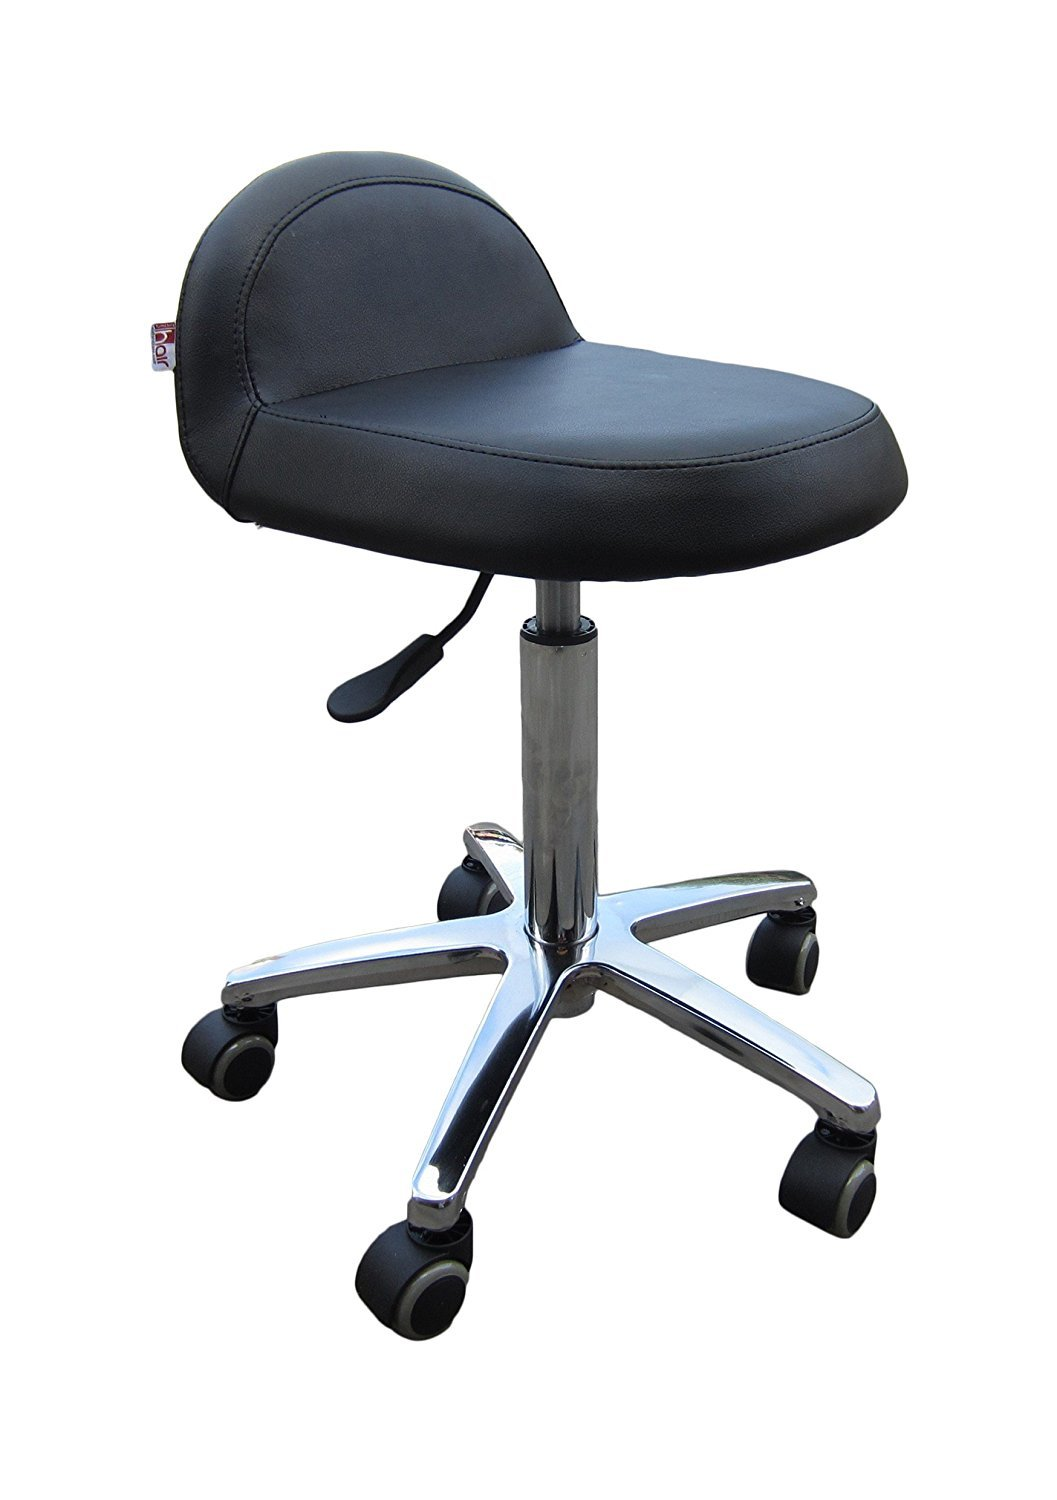 Hair Furniture Herakles Square Comfort Stylist Cutting Stool, Salon, Hair Dressers,Dentist, Optician, Tattooist, Receptionist, Retail, Stool, Fast UK Delivery 001-011-006-C024-01